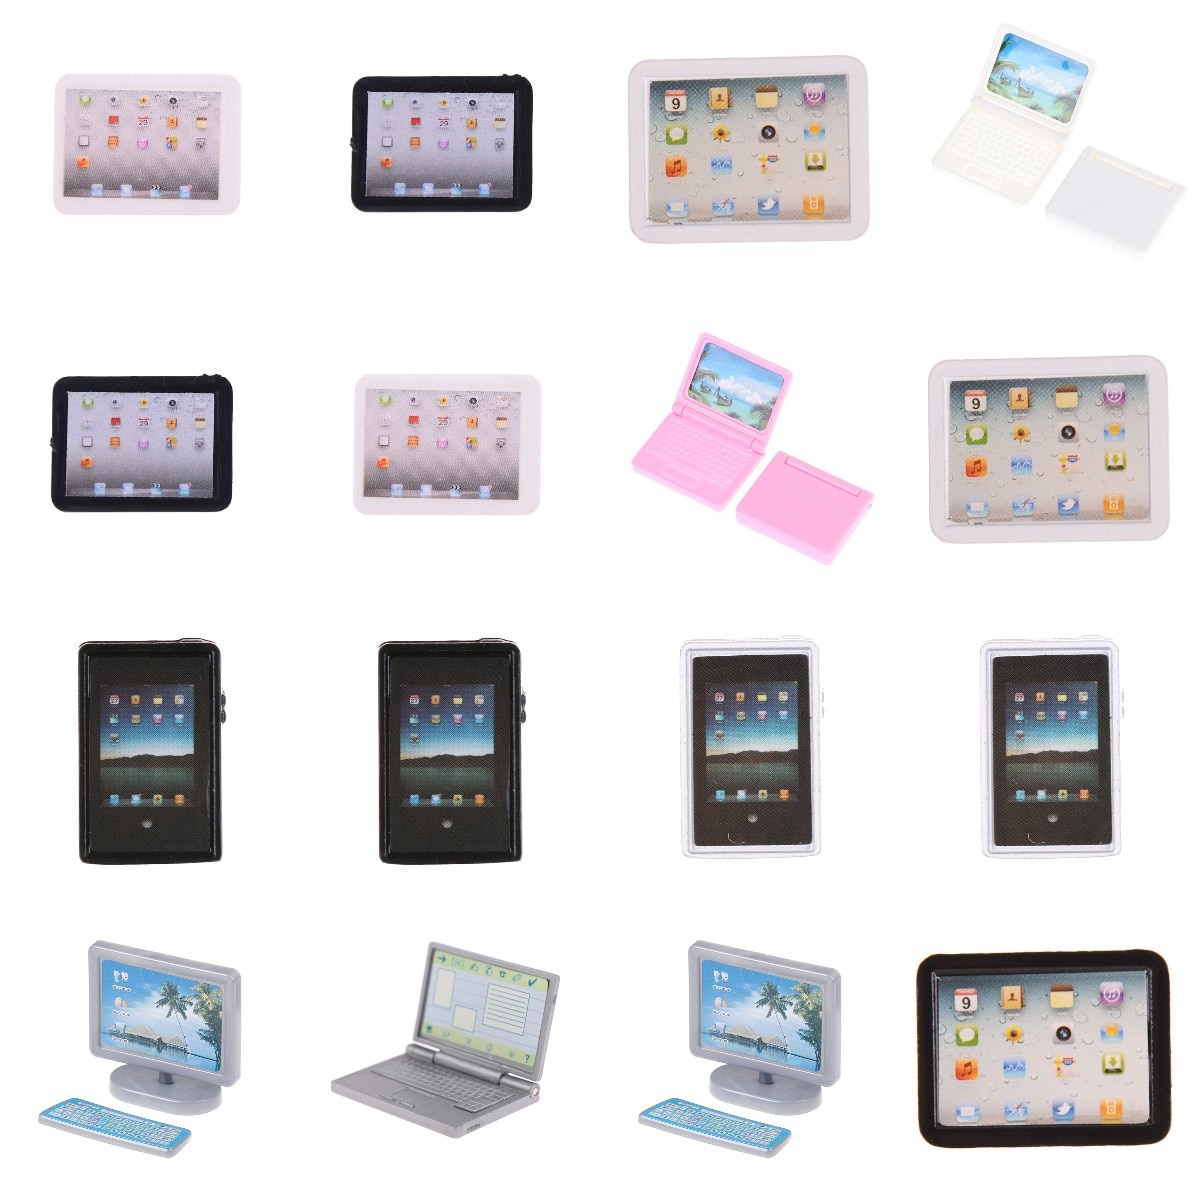 Mini Computer Model Simulation Tablet PC Toys 1/12 Dollhouse Miniature Accessories Doll House Decora